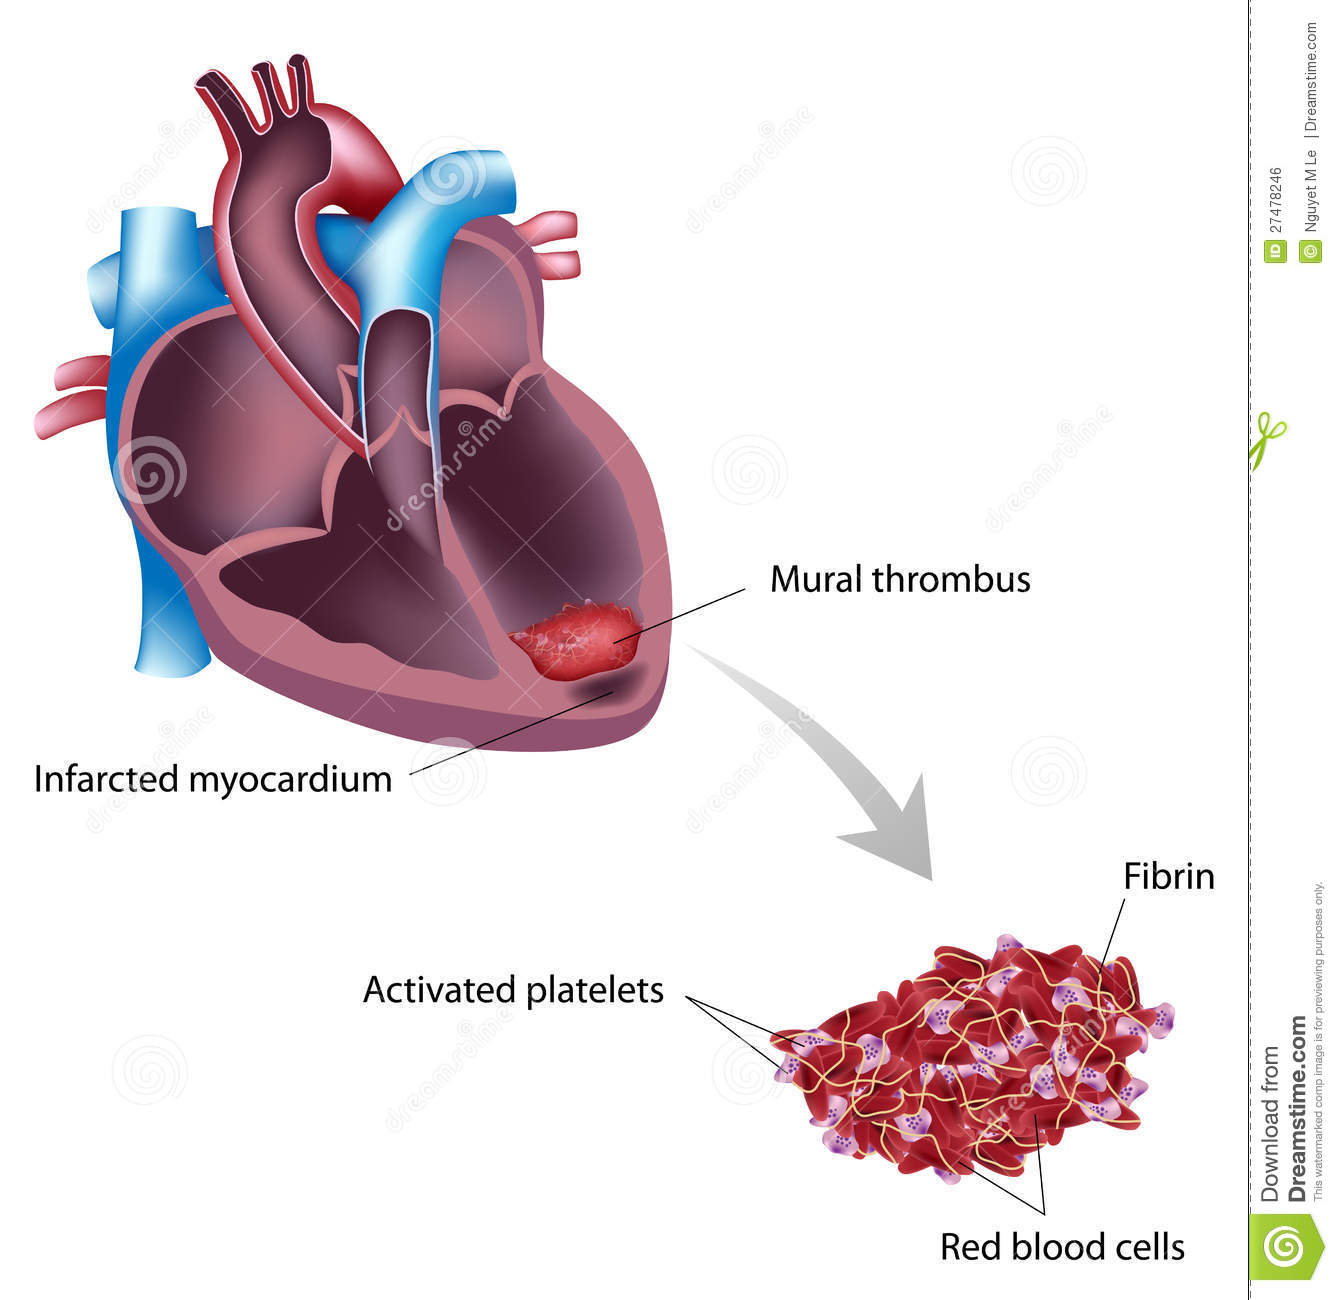 Mural thrombus royalty free stock image image 27478246 for Aortic mural thrombus treatment